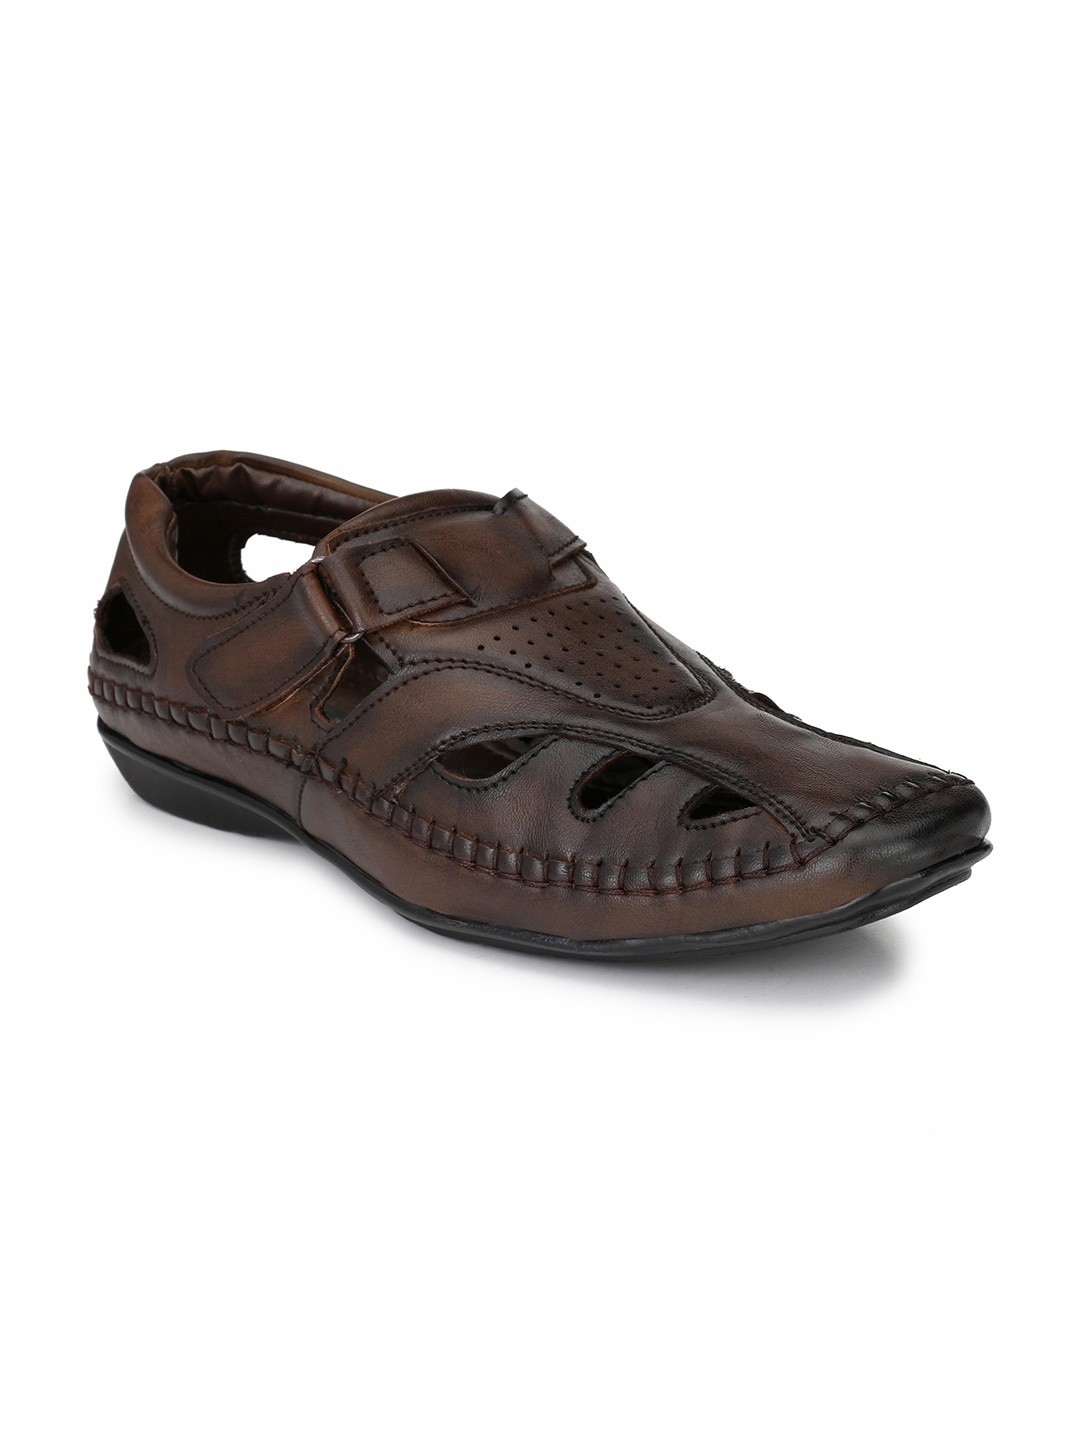 354d94c7cc3809 Men Footwear - Buy Mens Footwear   Shoes Online in India - Myntra